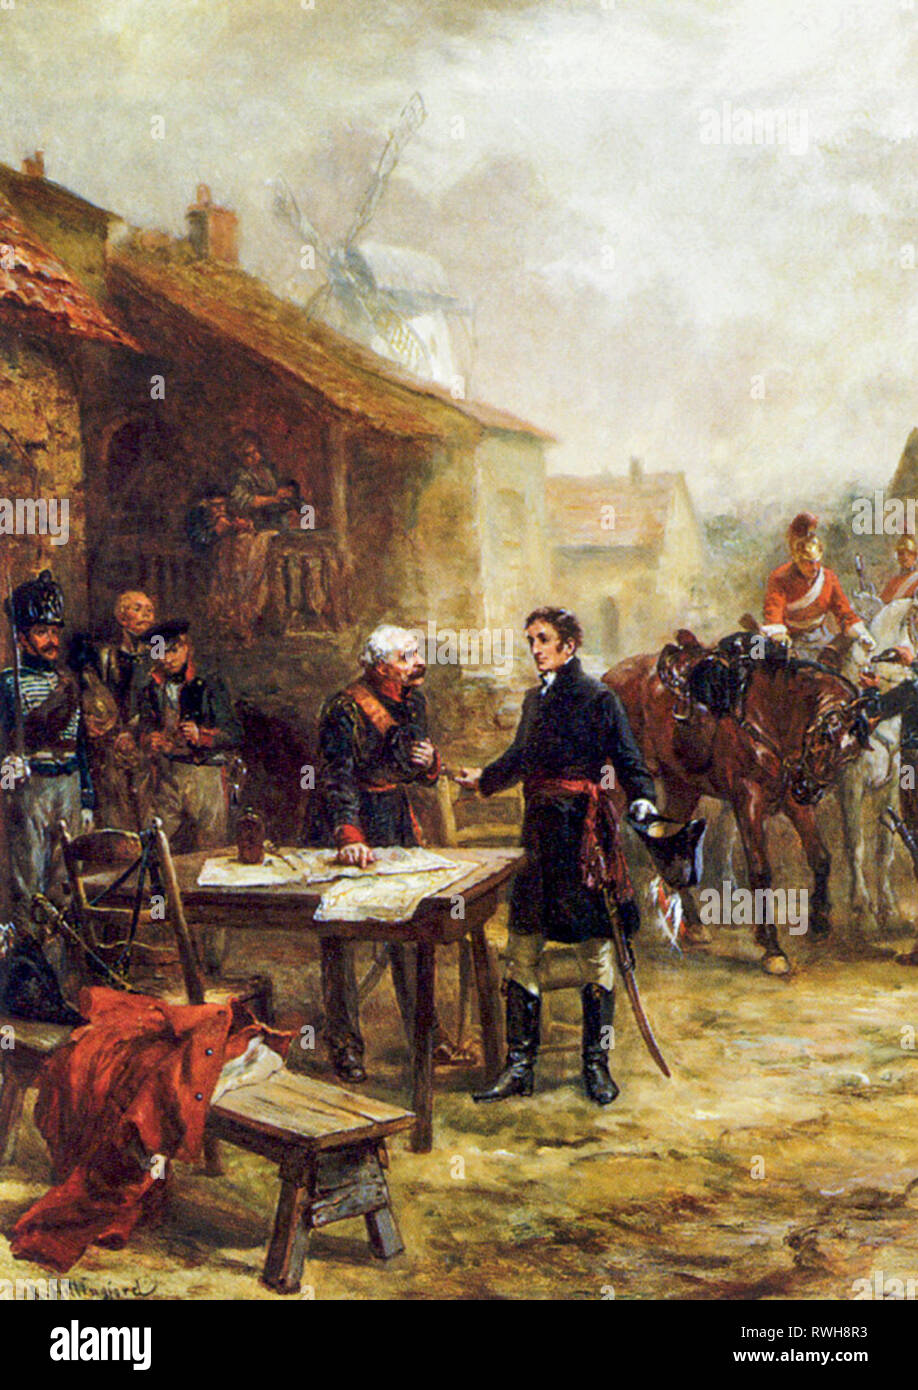 Wellington and Blucher Meeting before the Battle of Waterloo, painting by Robert Alexander Hillingford, after 1815 - Stock Image